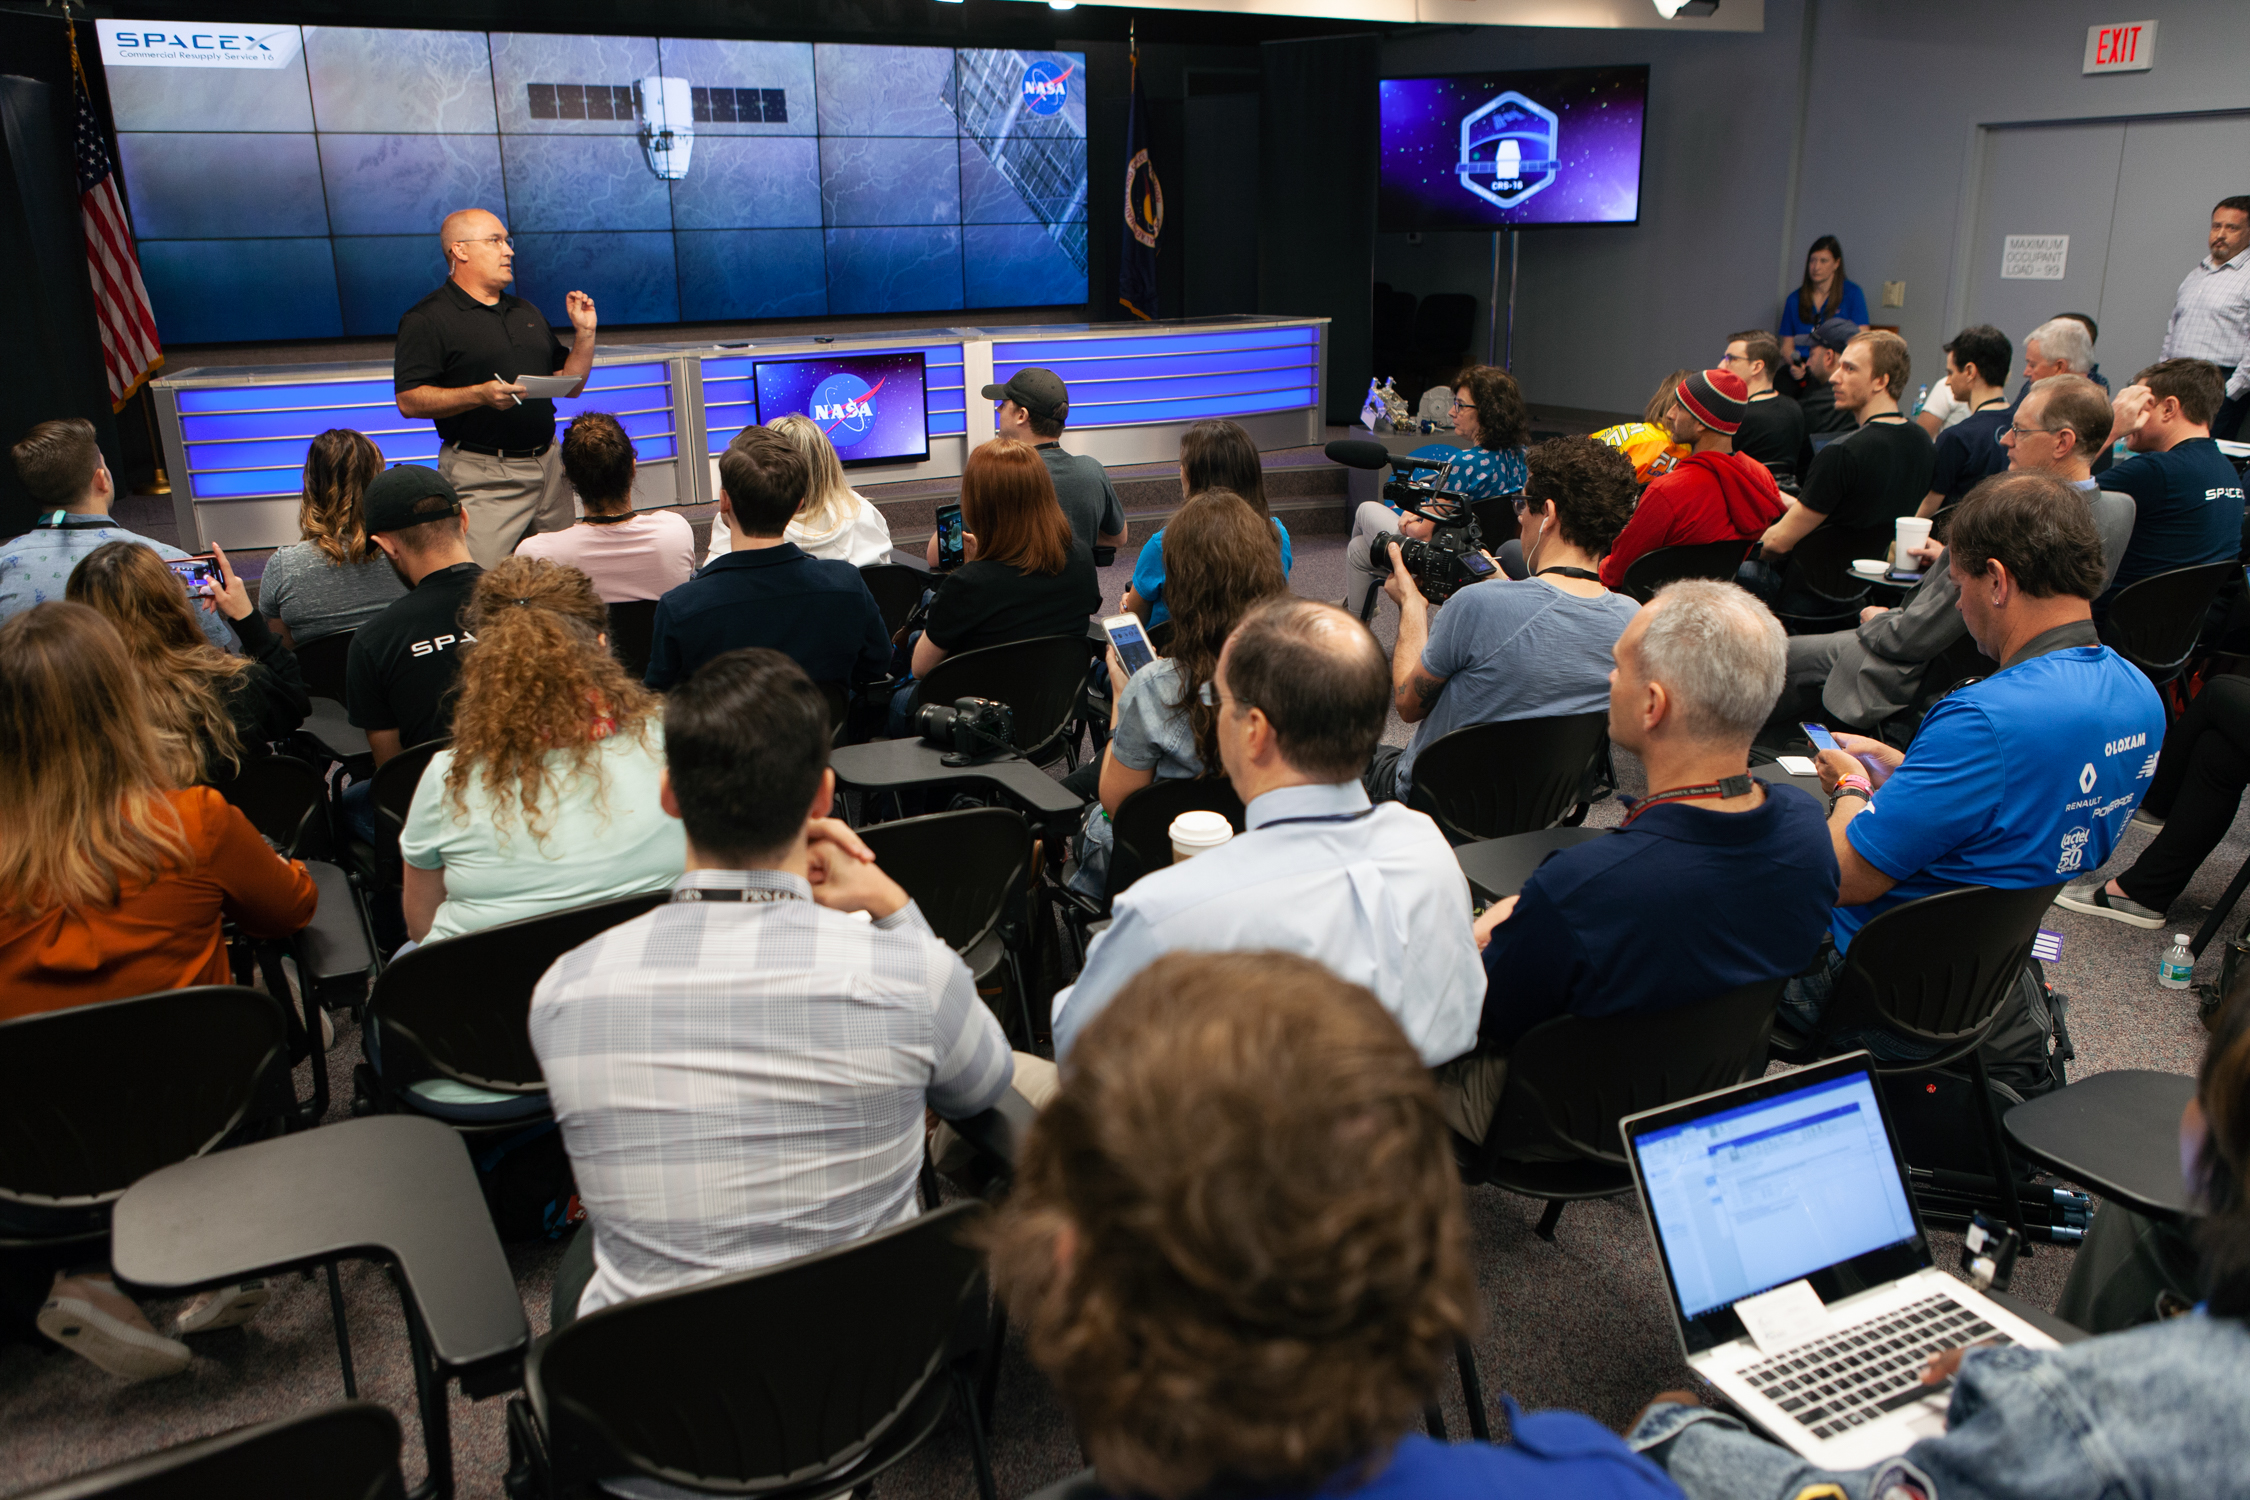 ksc-20181203-ph_kls01_0002_46114429702_o.jpg